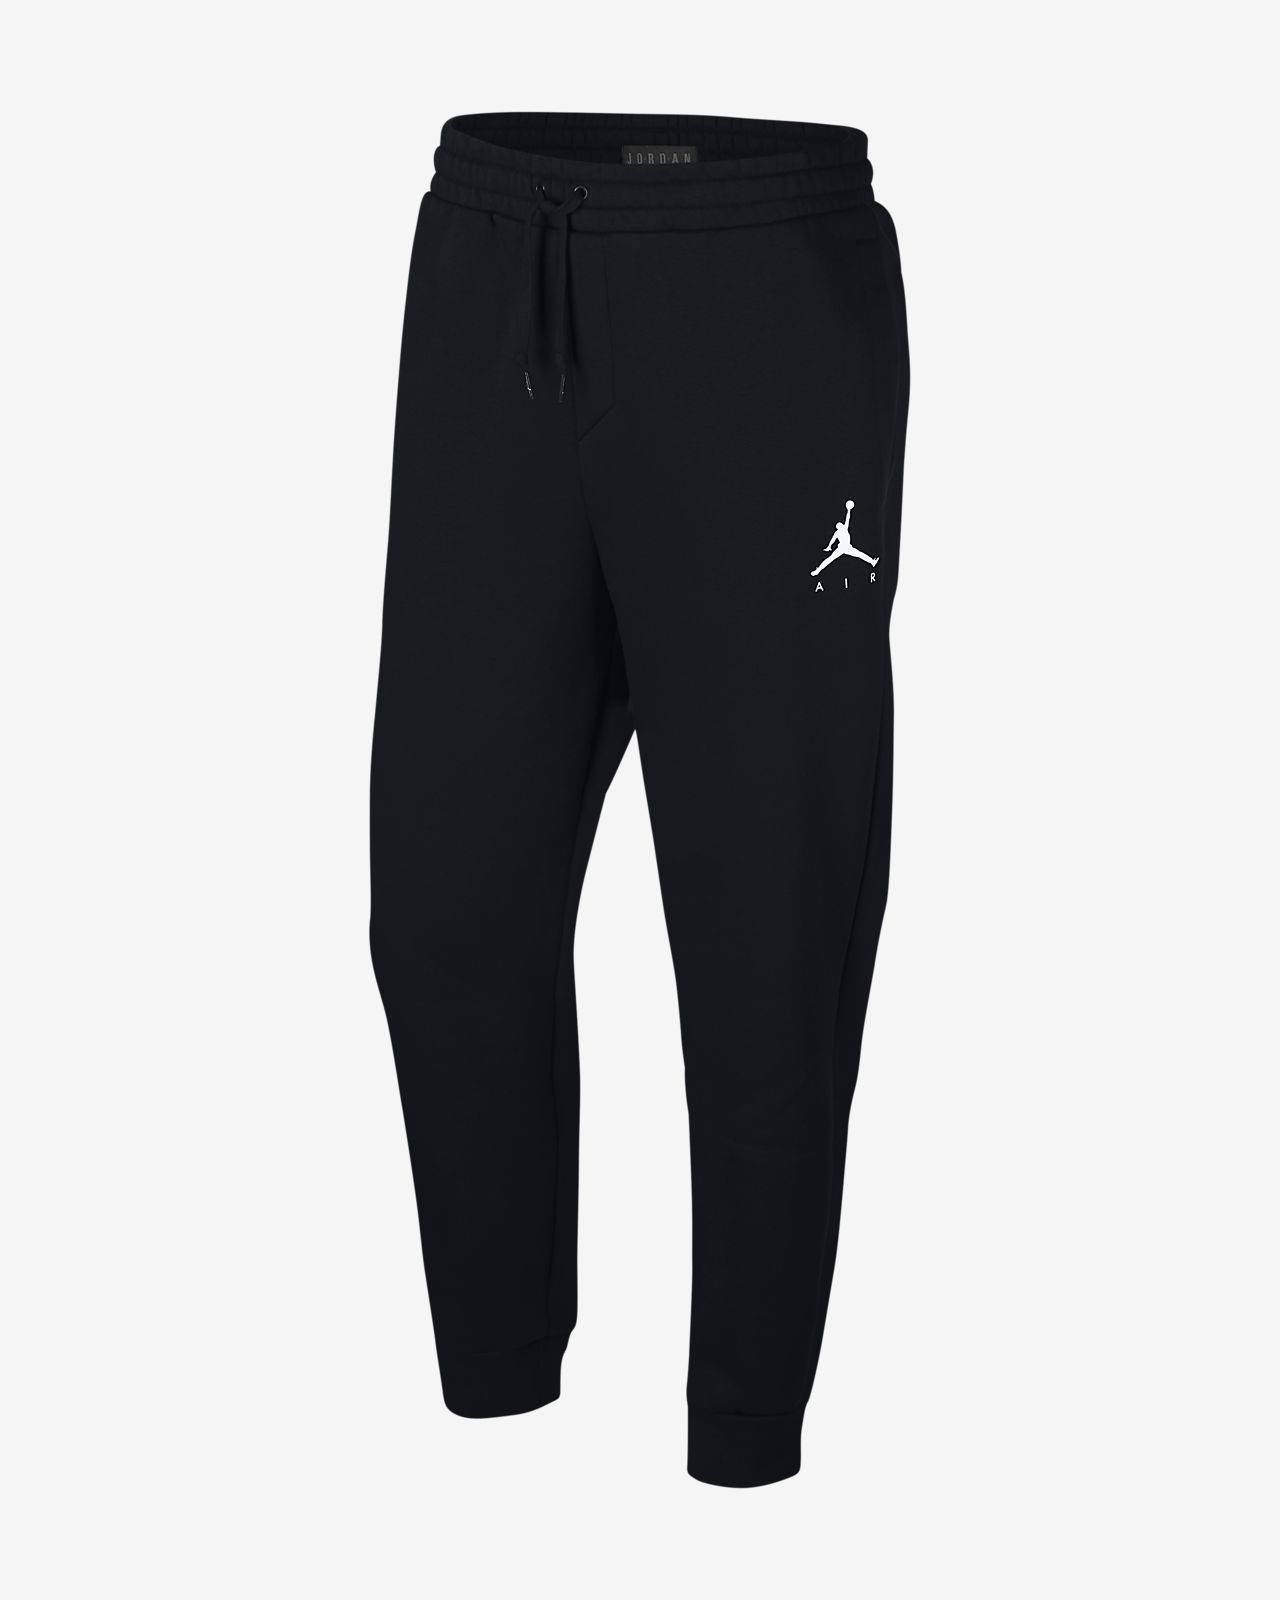 Jordan Jumpman Air Pantalons Fleece - Home